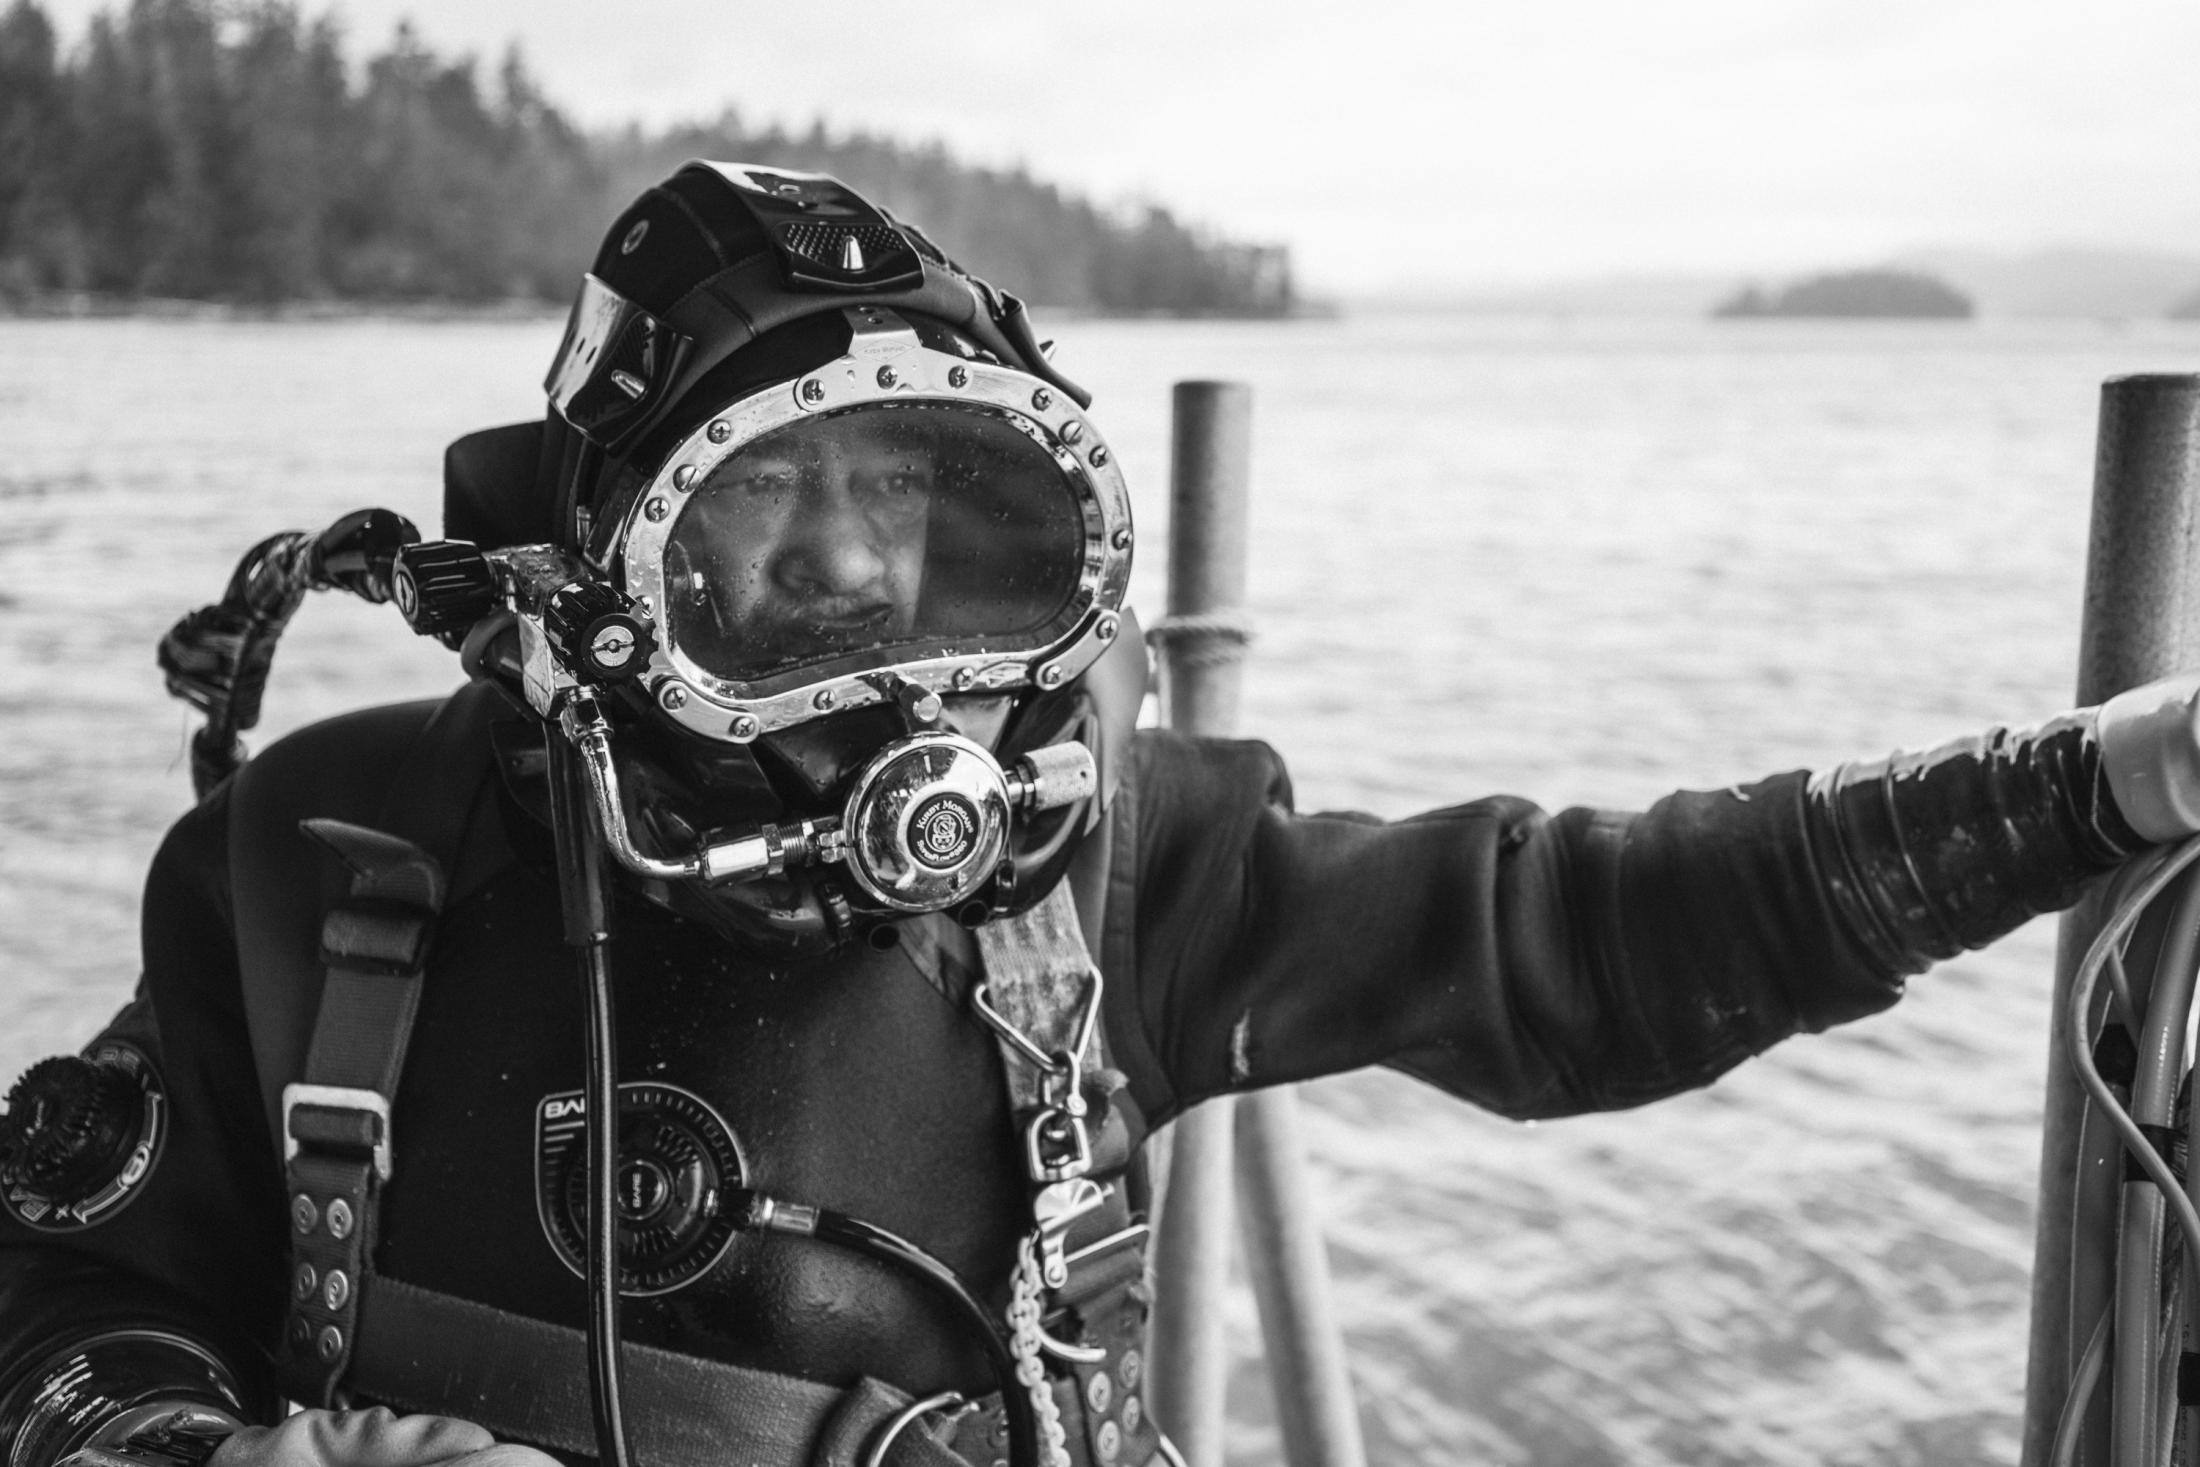 """Meet Curtis Brown. Don't let his soft smile and kind disposition fool you. He is a seasoned geoduck hustler on the Klawock dive scene. His military roots are apparent in the attention and care he brings to his craft. He is patient, careful, and deliberate, which is important when you are weighed down 50 feet in frigid waters. """"Geoducks like the sugar sand,"""" he says. """"The barnacly-broken up- shell sand that when you toss it up, it'll all settle down. That's where you'll find them."""" Curtis slaps on his fishing costume — a dry suit and layers of fleece — with precision. He spits into his mask, rubbing the glass clear before falling gracefully into the drink."""